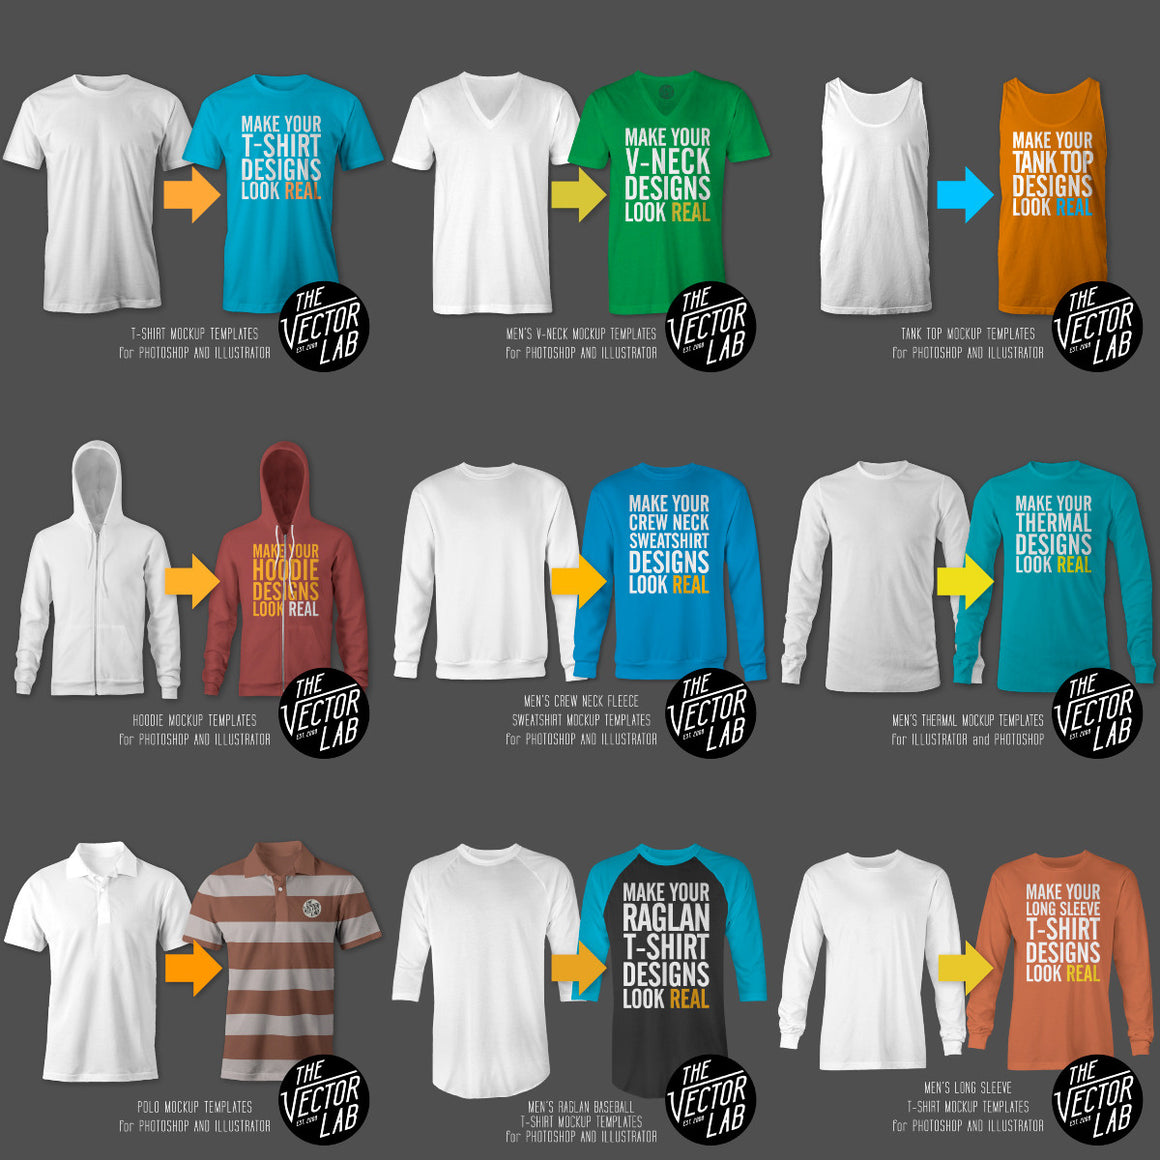 How to make a t-shirt design template